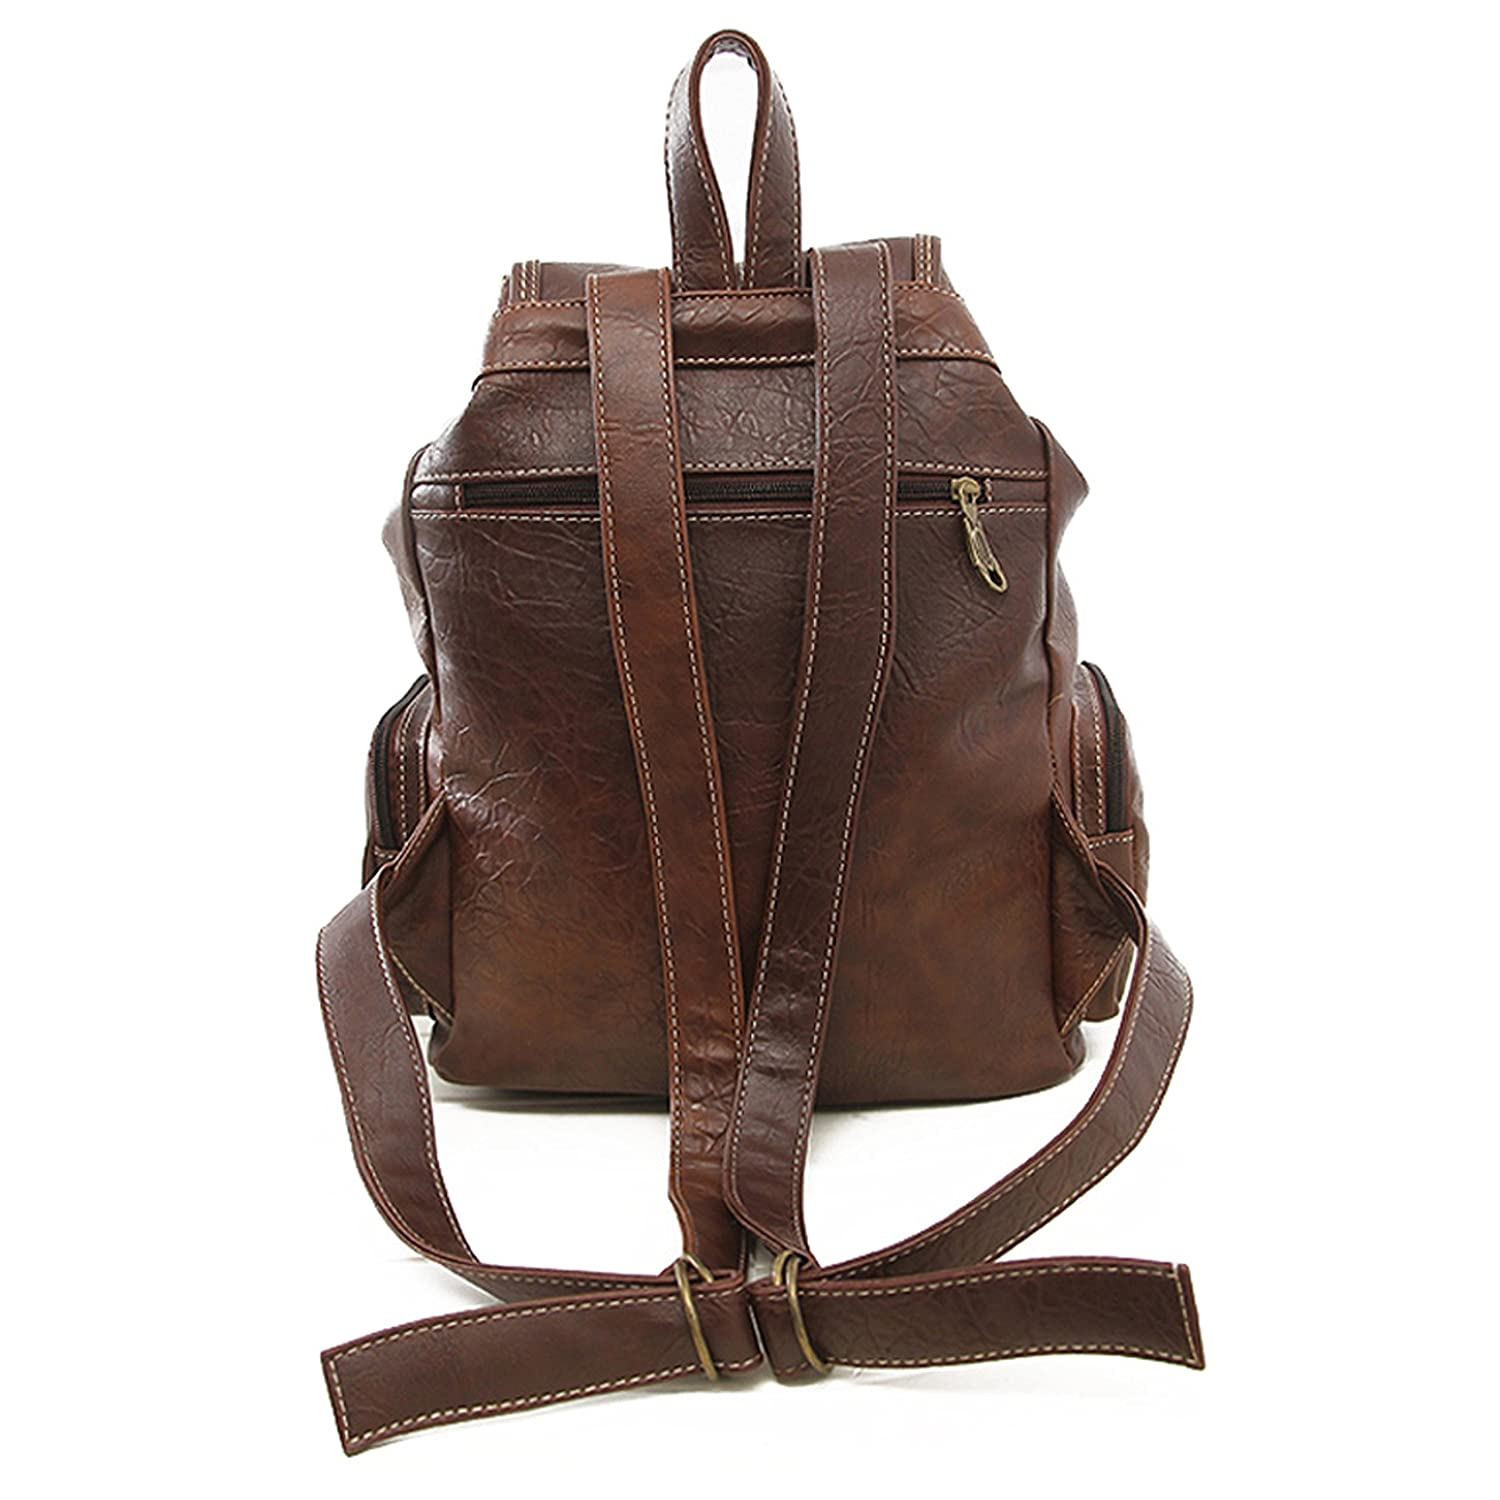 475c77ece041 Amazon.com   Women Backpack Vintage Backpacks for Teenage Girls Fashion  Large School Bags High Quality PU Leather BPN12 Brown   Everything Else